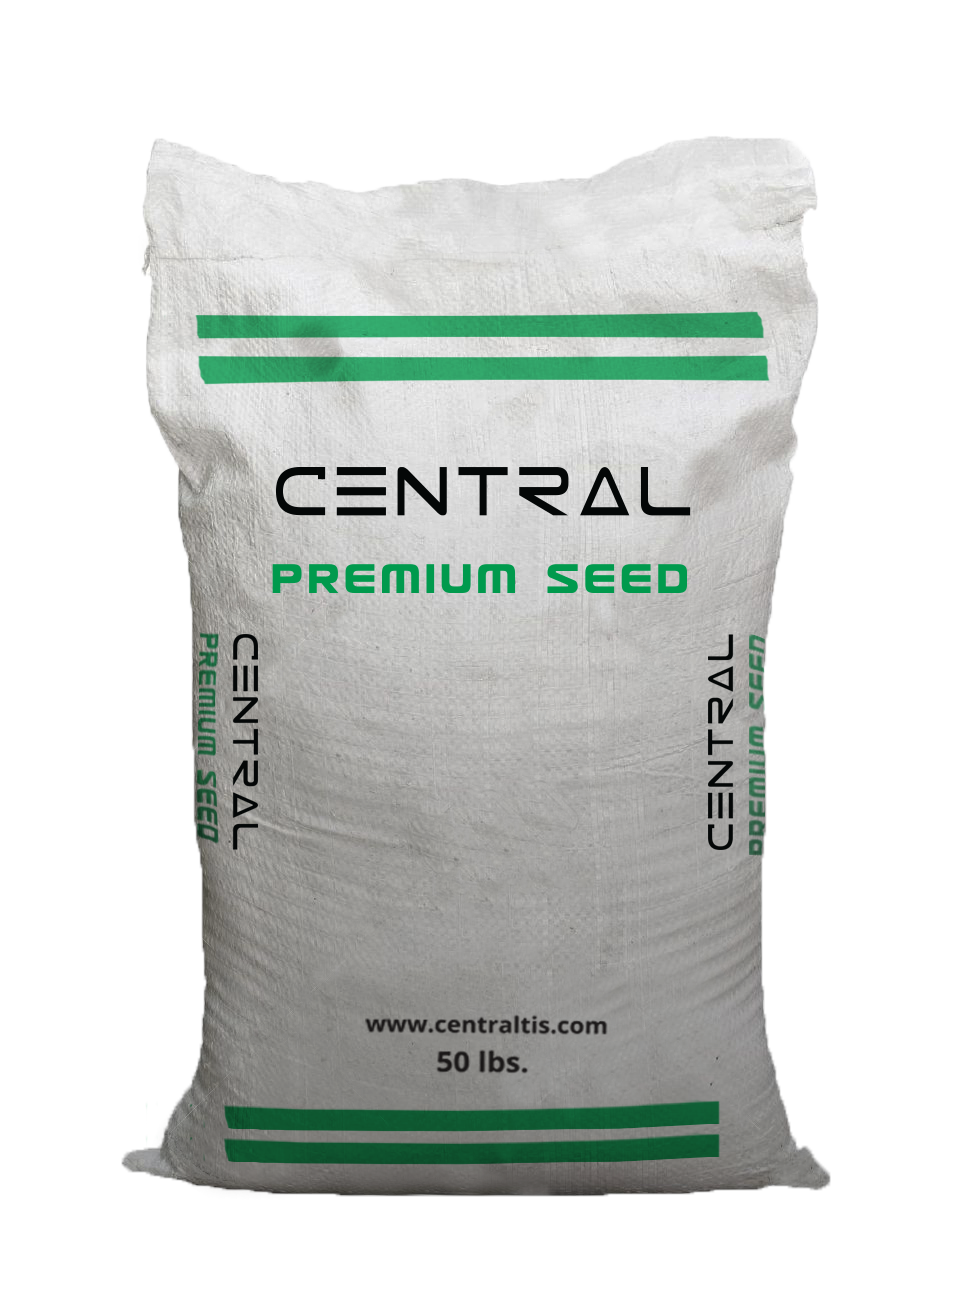 CTIS_Seed Bag_Single.png